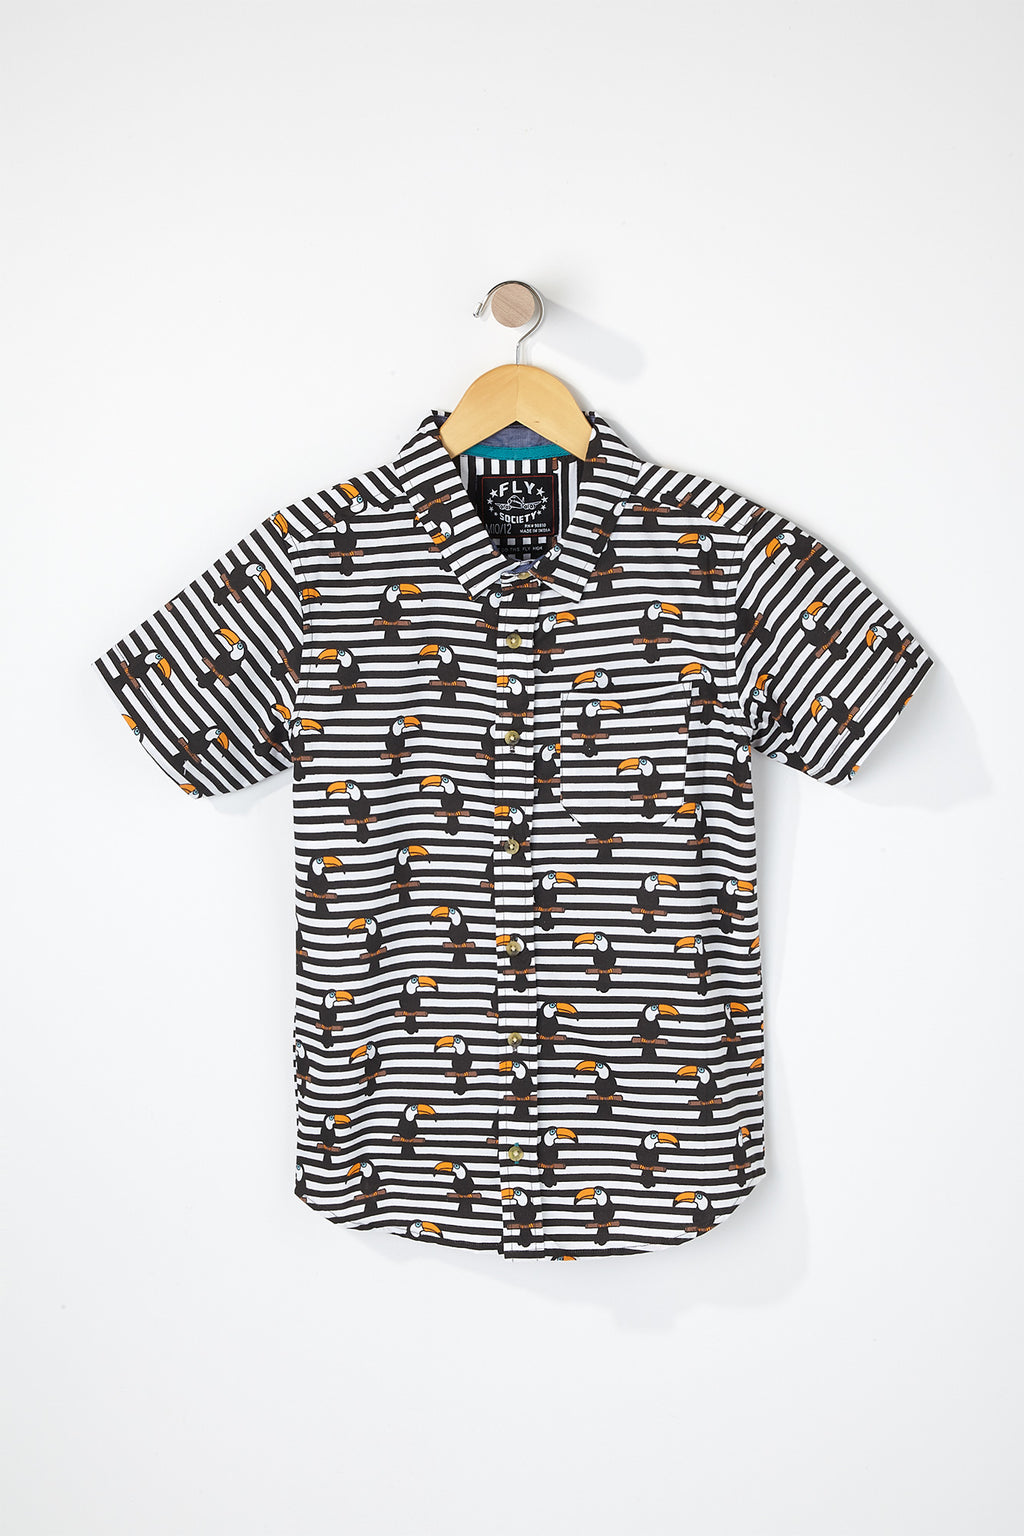 West49 Boys Toucan Button Up Shirt